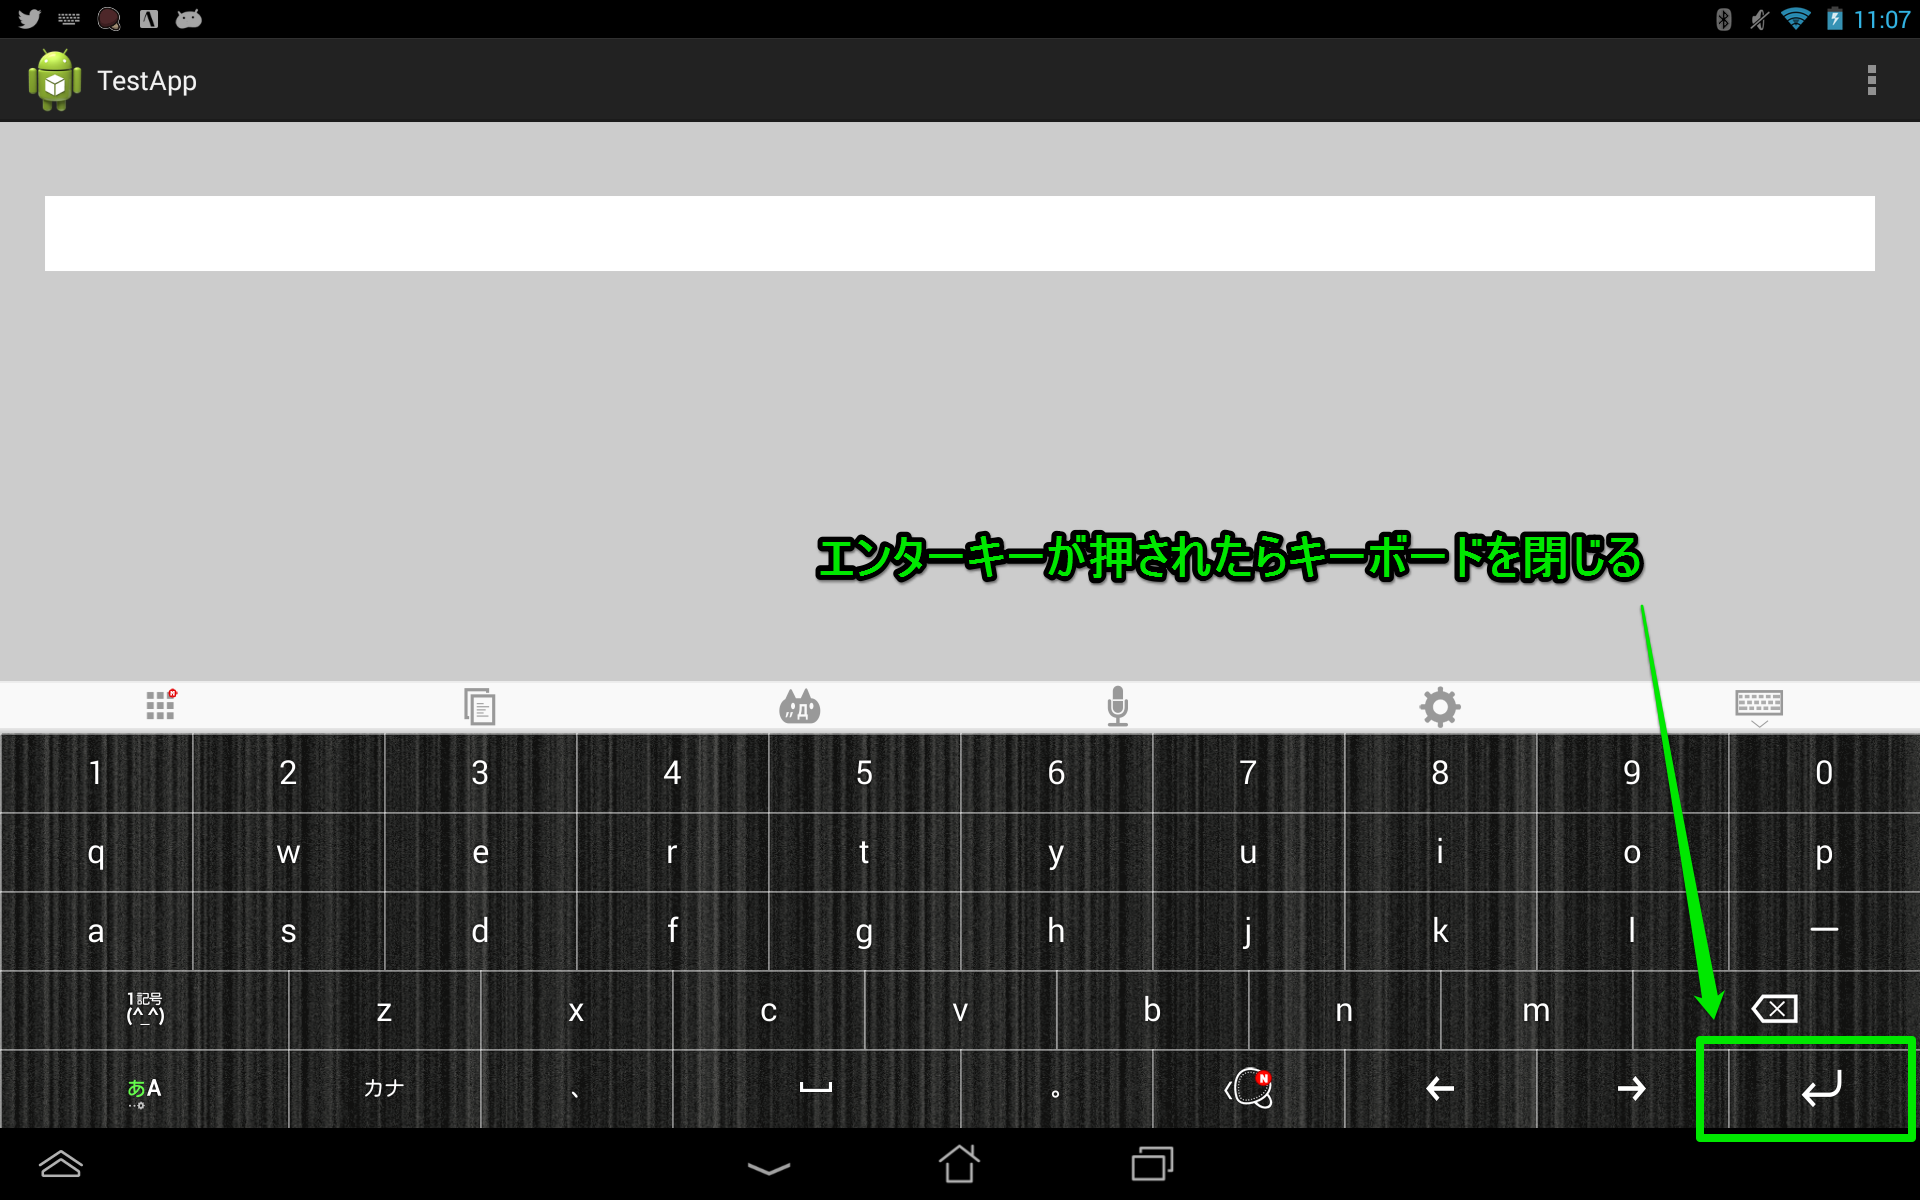 [AndroidのEditTextのTips その2] <br>エンターキーが押されたらキーボードを閉じる